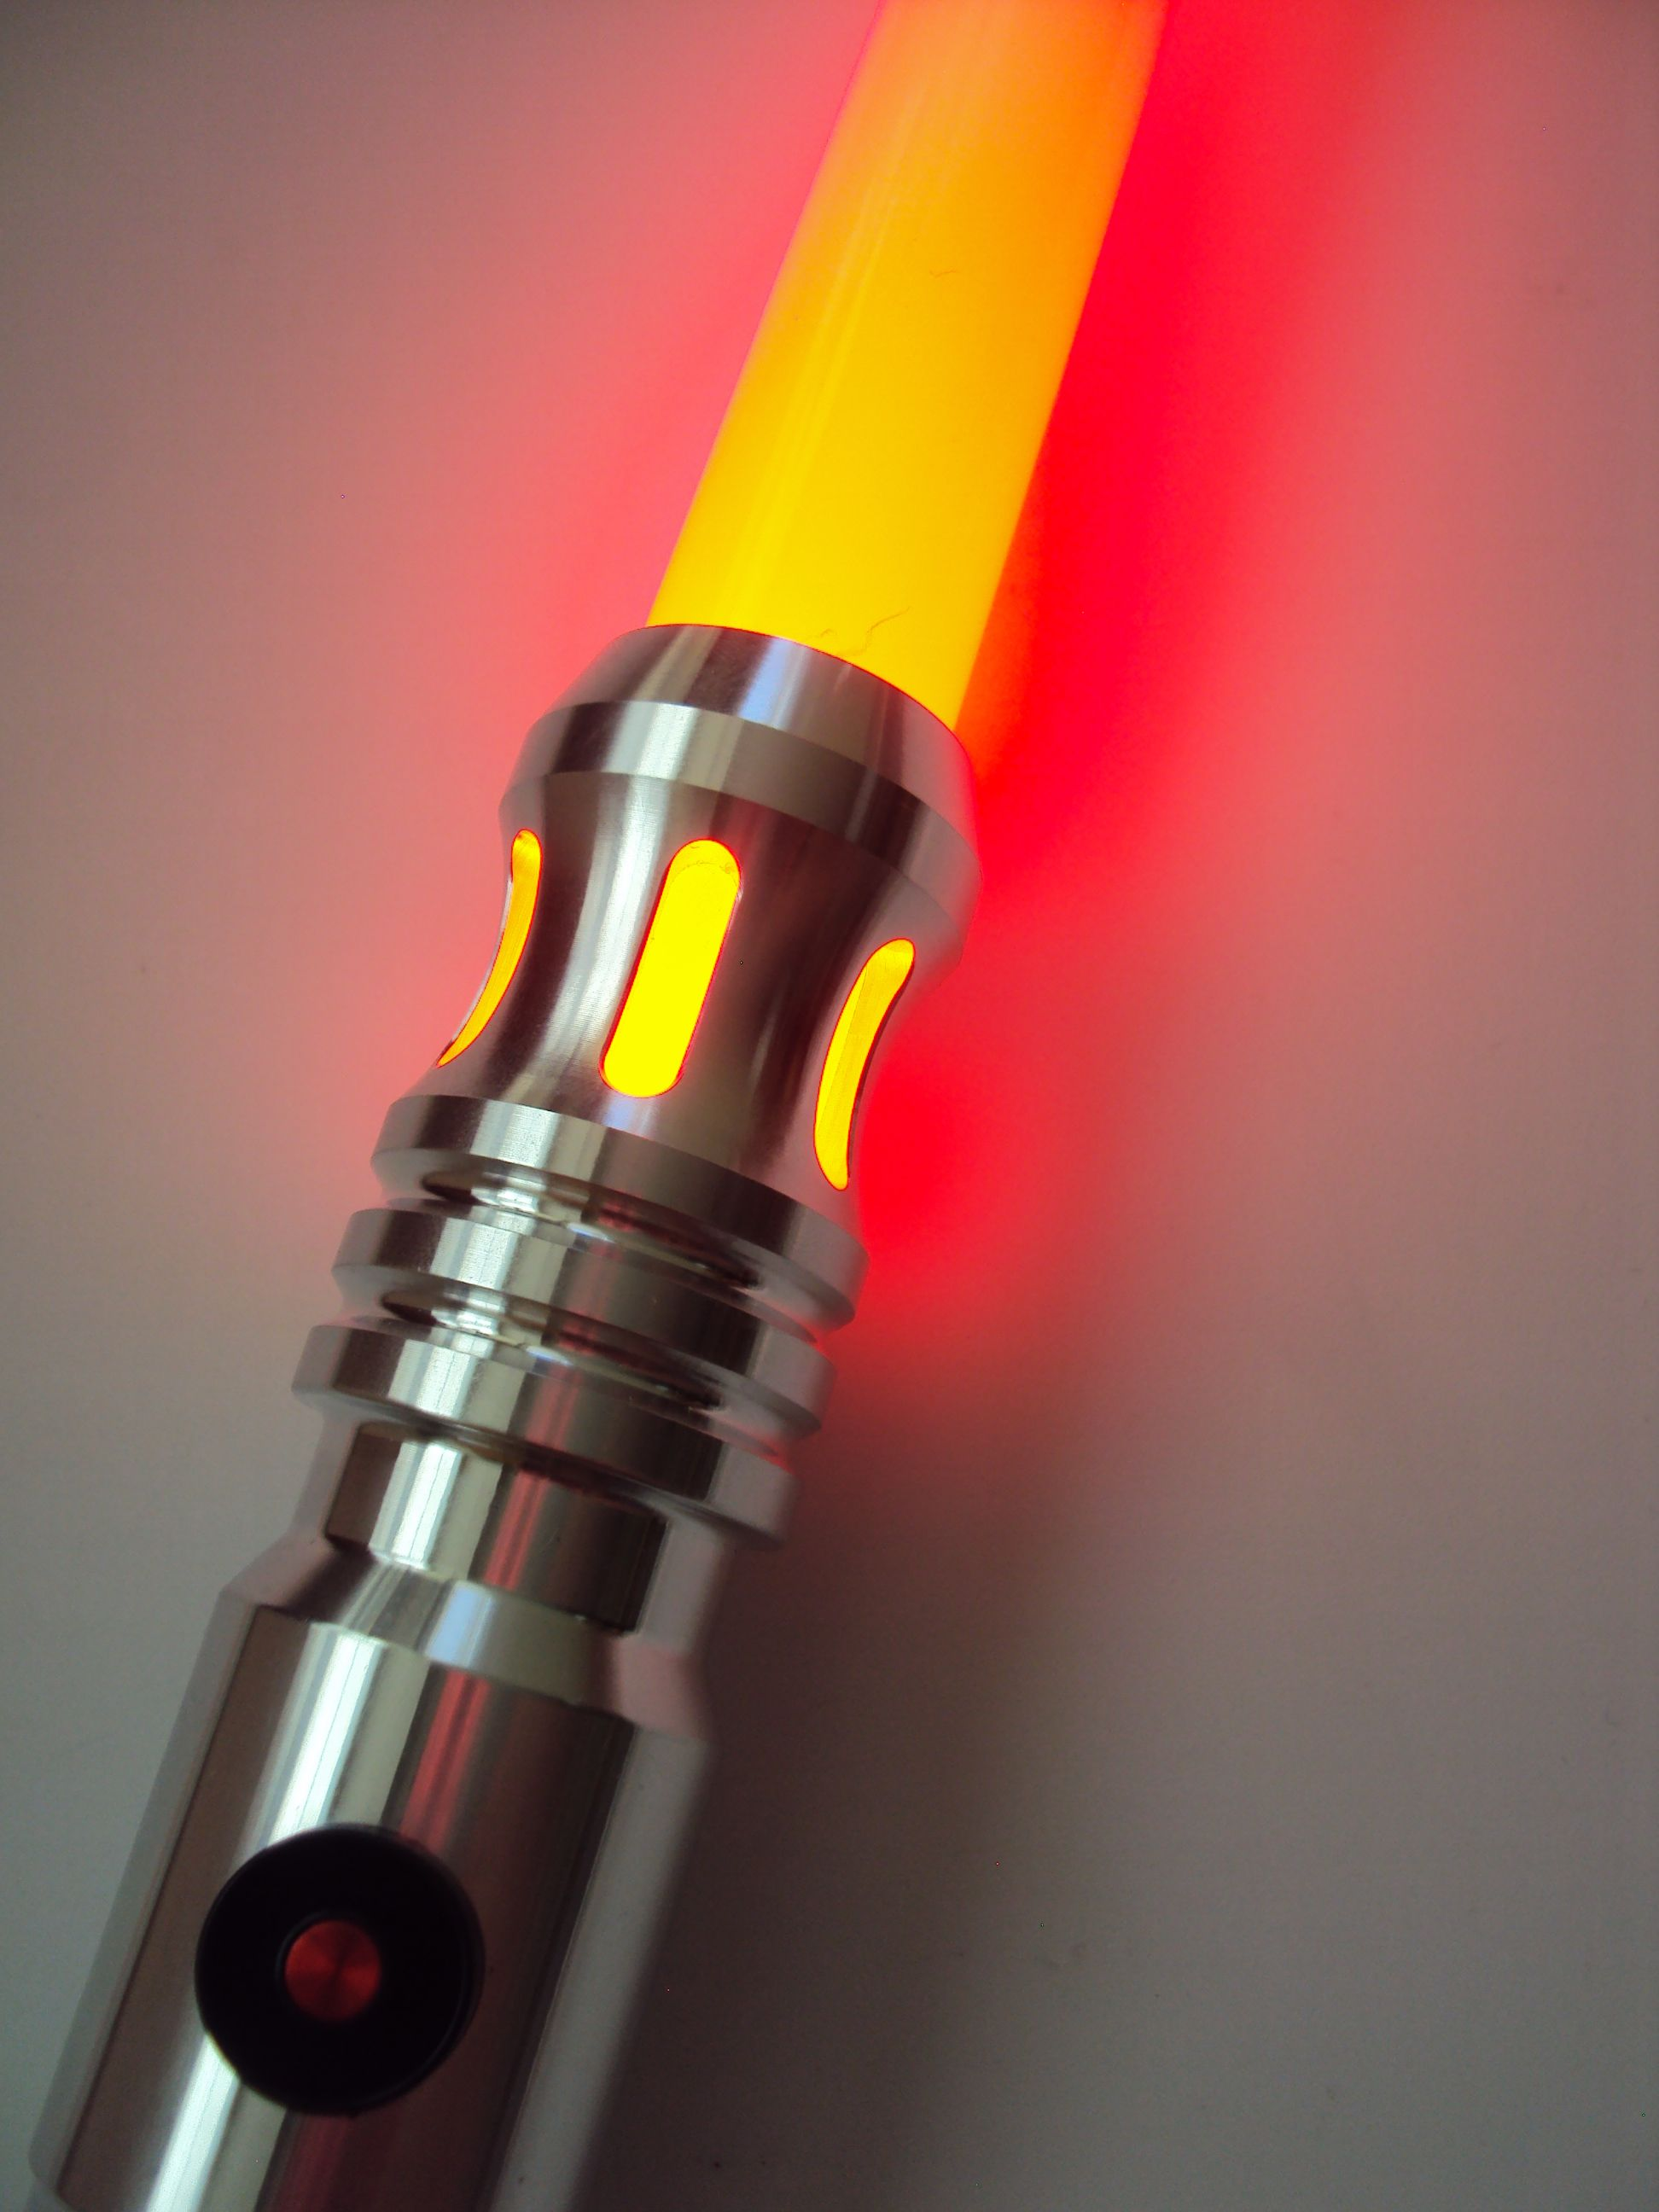 ultrasabers initiate v4 with metallic red switch and windows in the